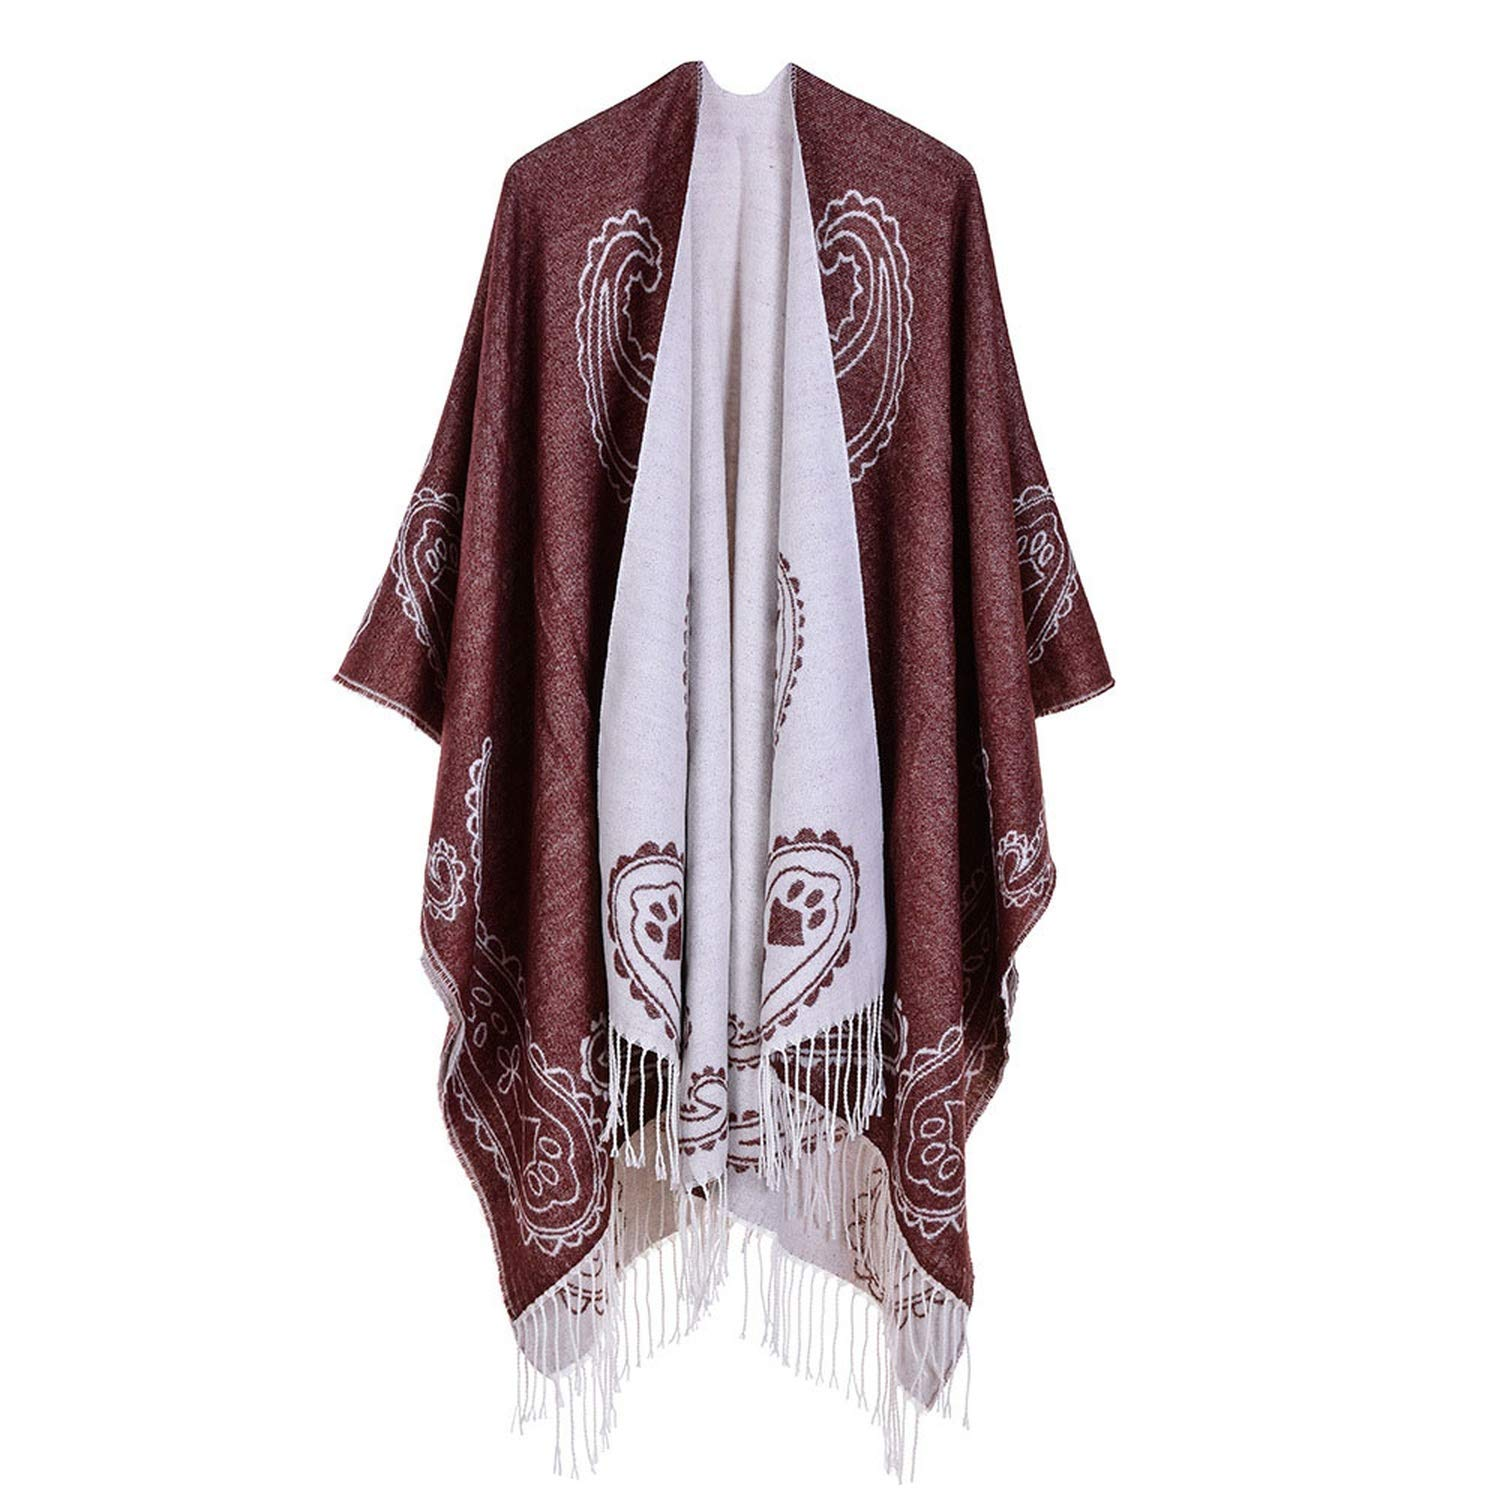 Coffee Luxury winter pashmina scarf shaw cashew ethnic wind shawl Double sided print cape cashmere tassel poncho scarves,Wine Red